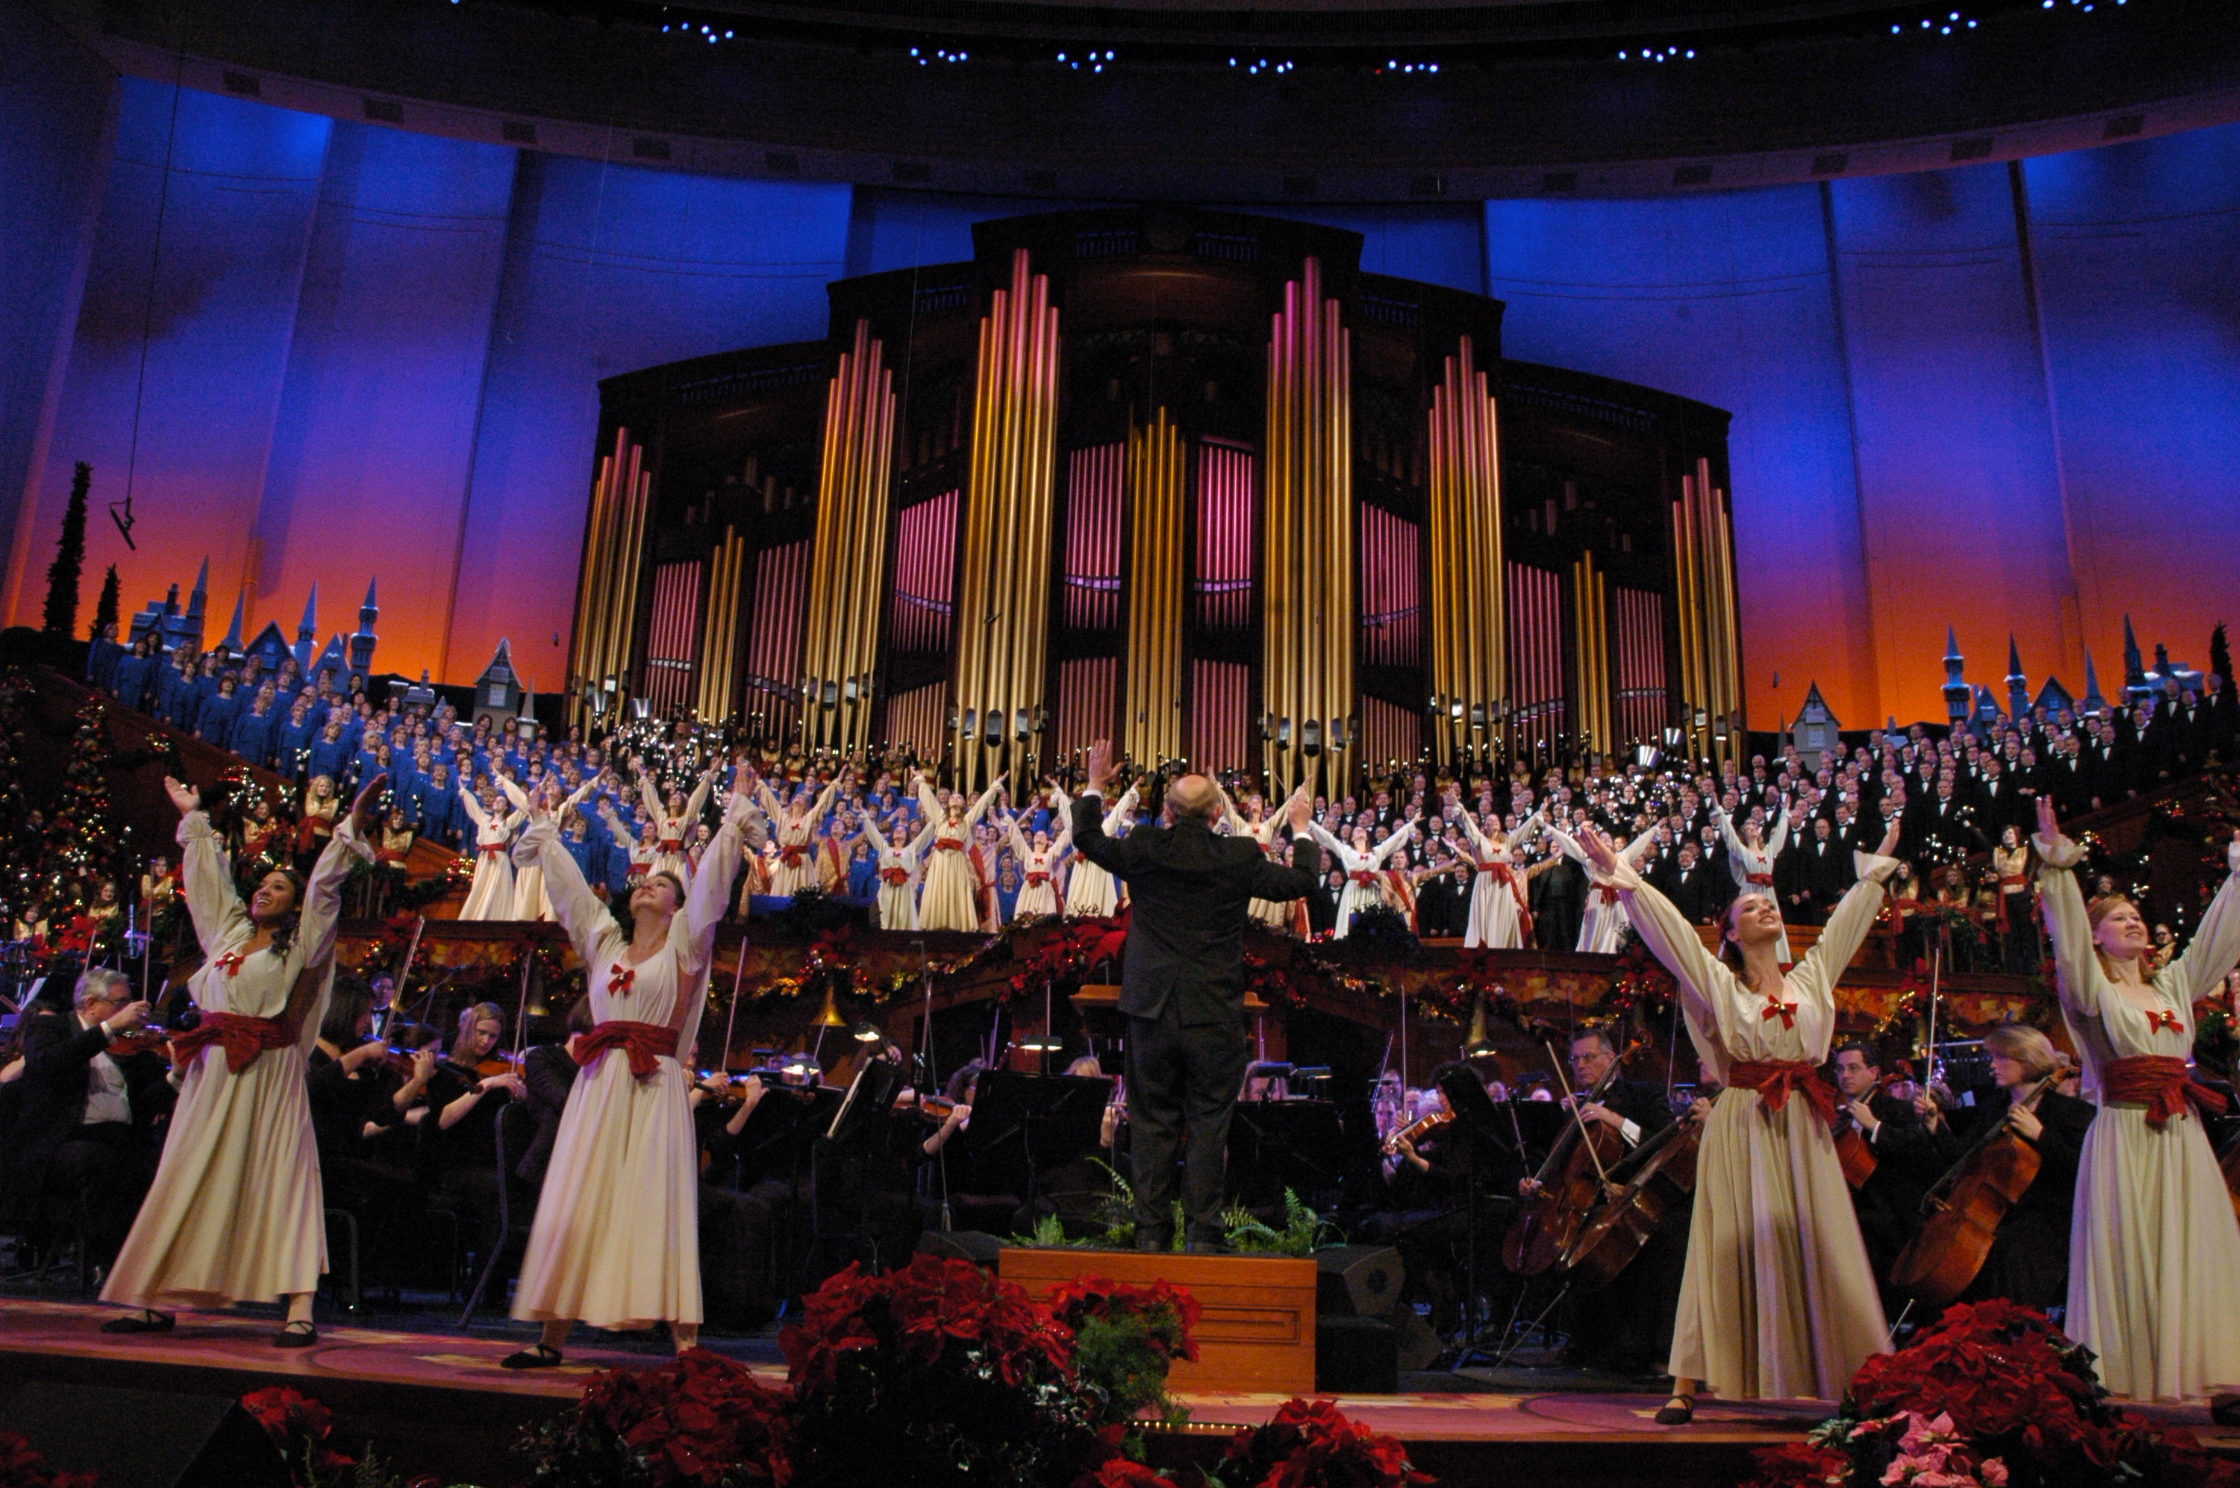 2011 Mormon Tabernacle Choir